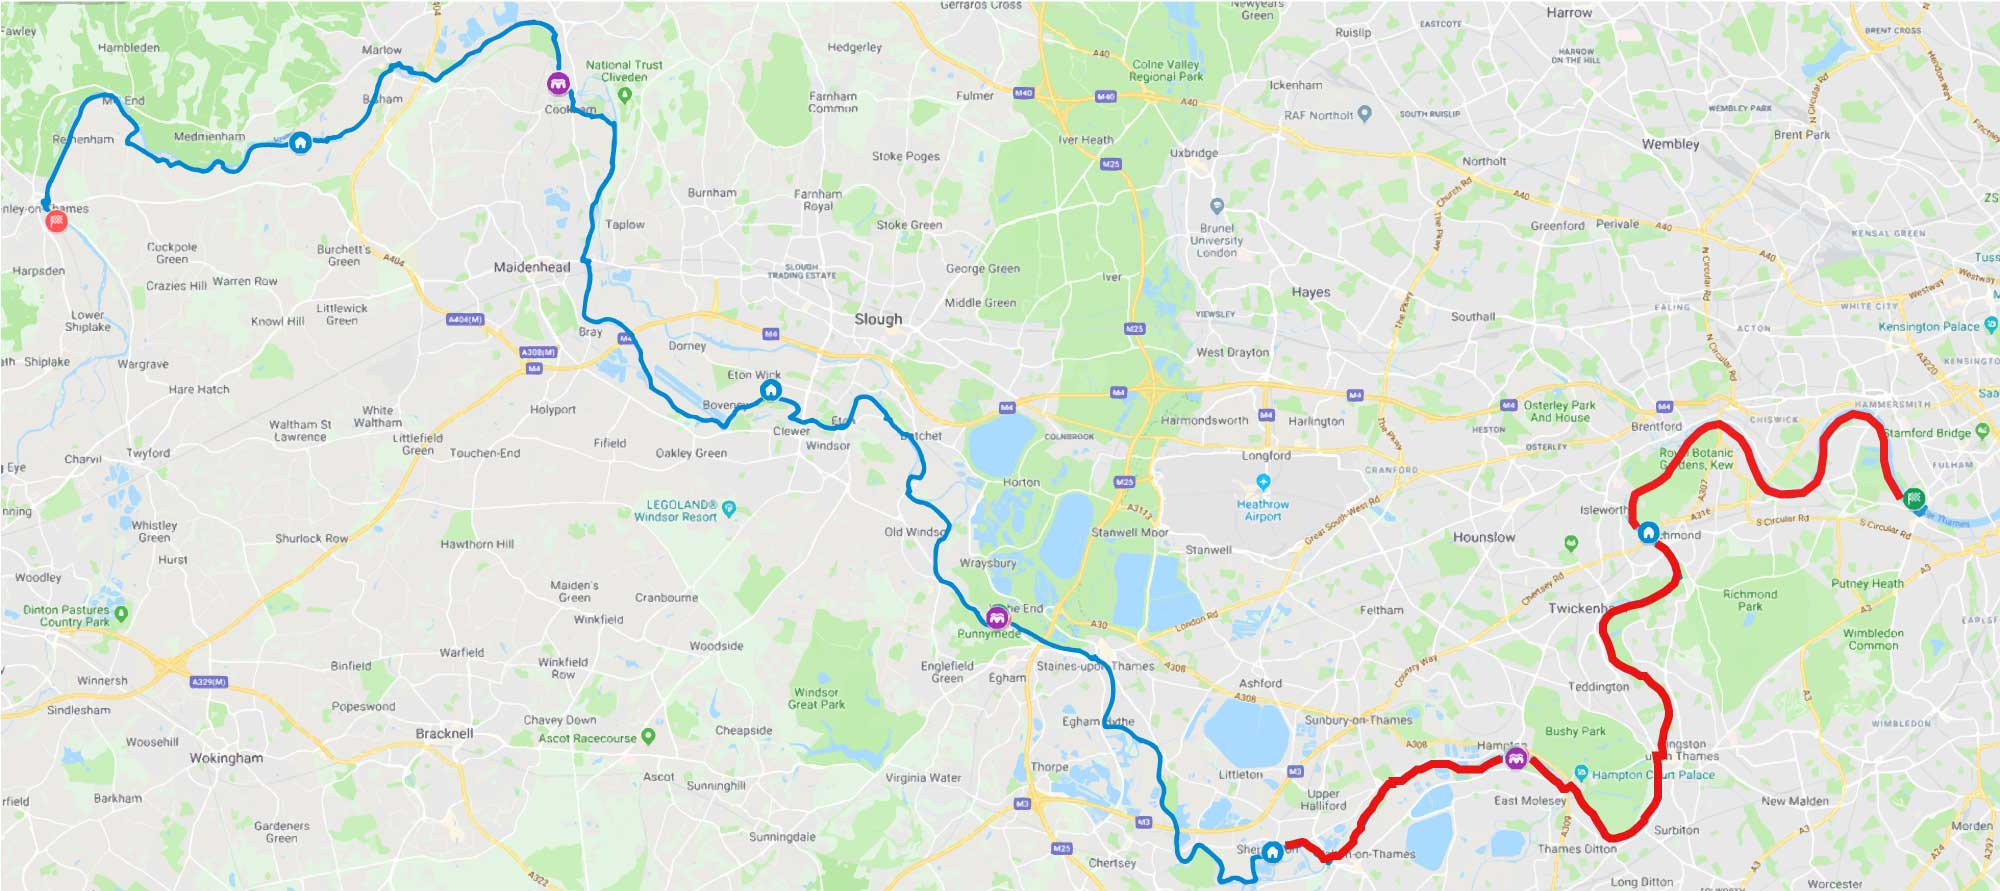 Thames path challenge 100km route